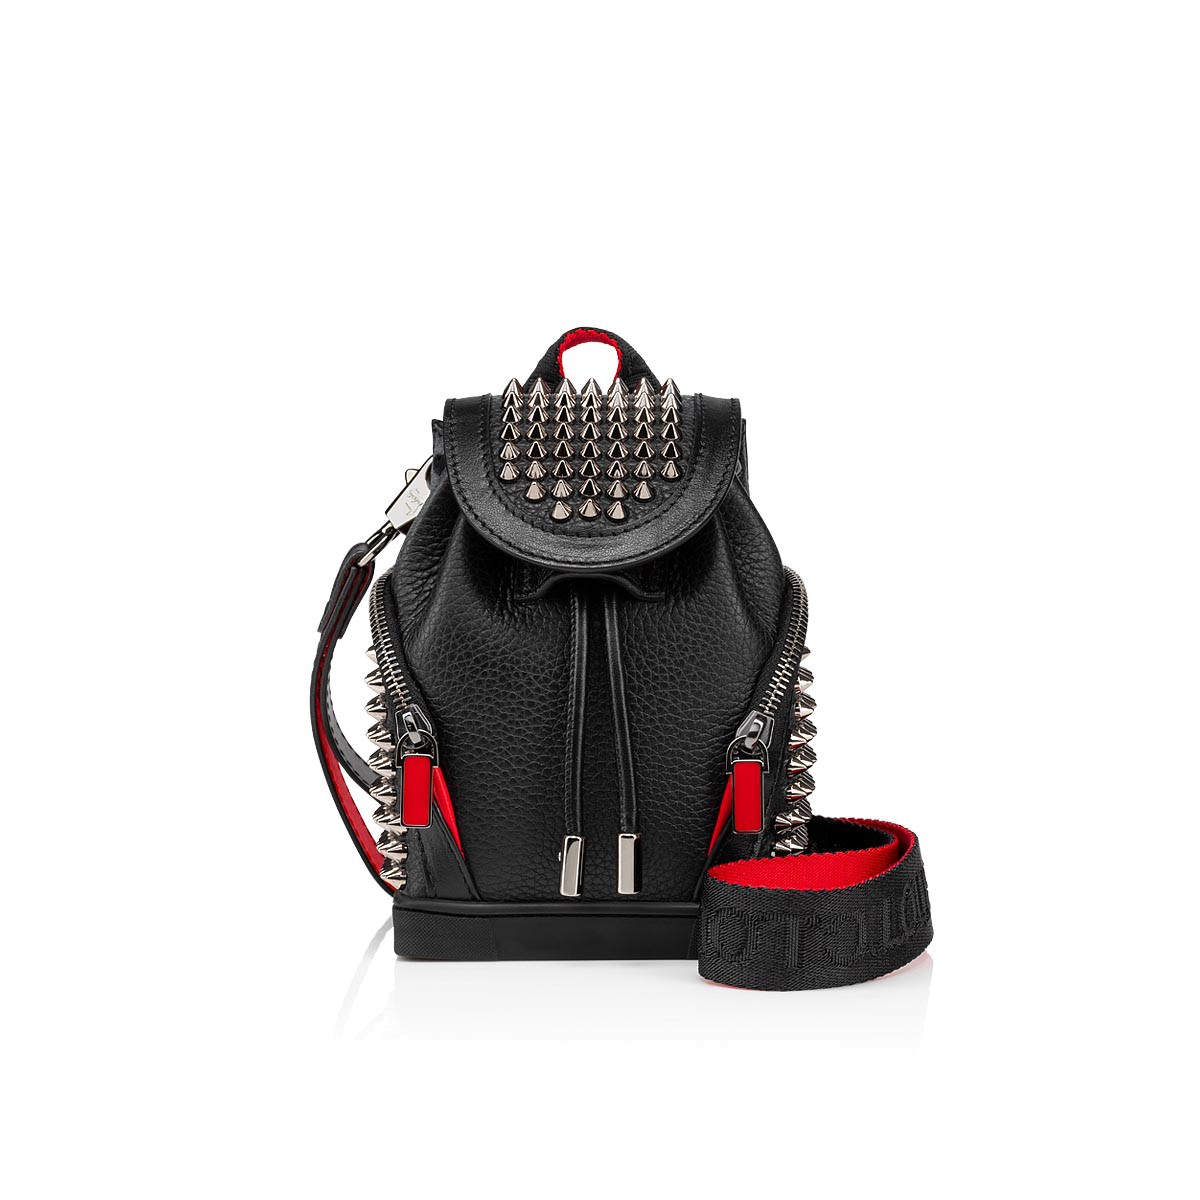 Small Leather Goods - Explorafunk Keyring - Christian Louboutin